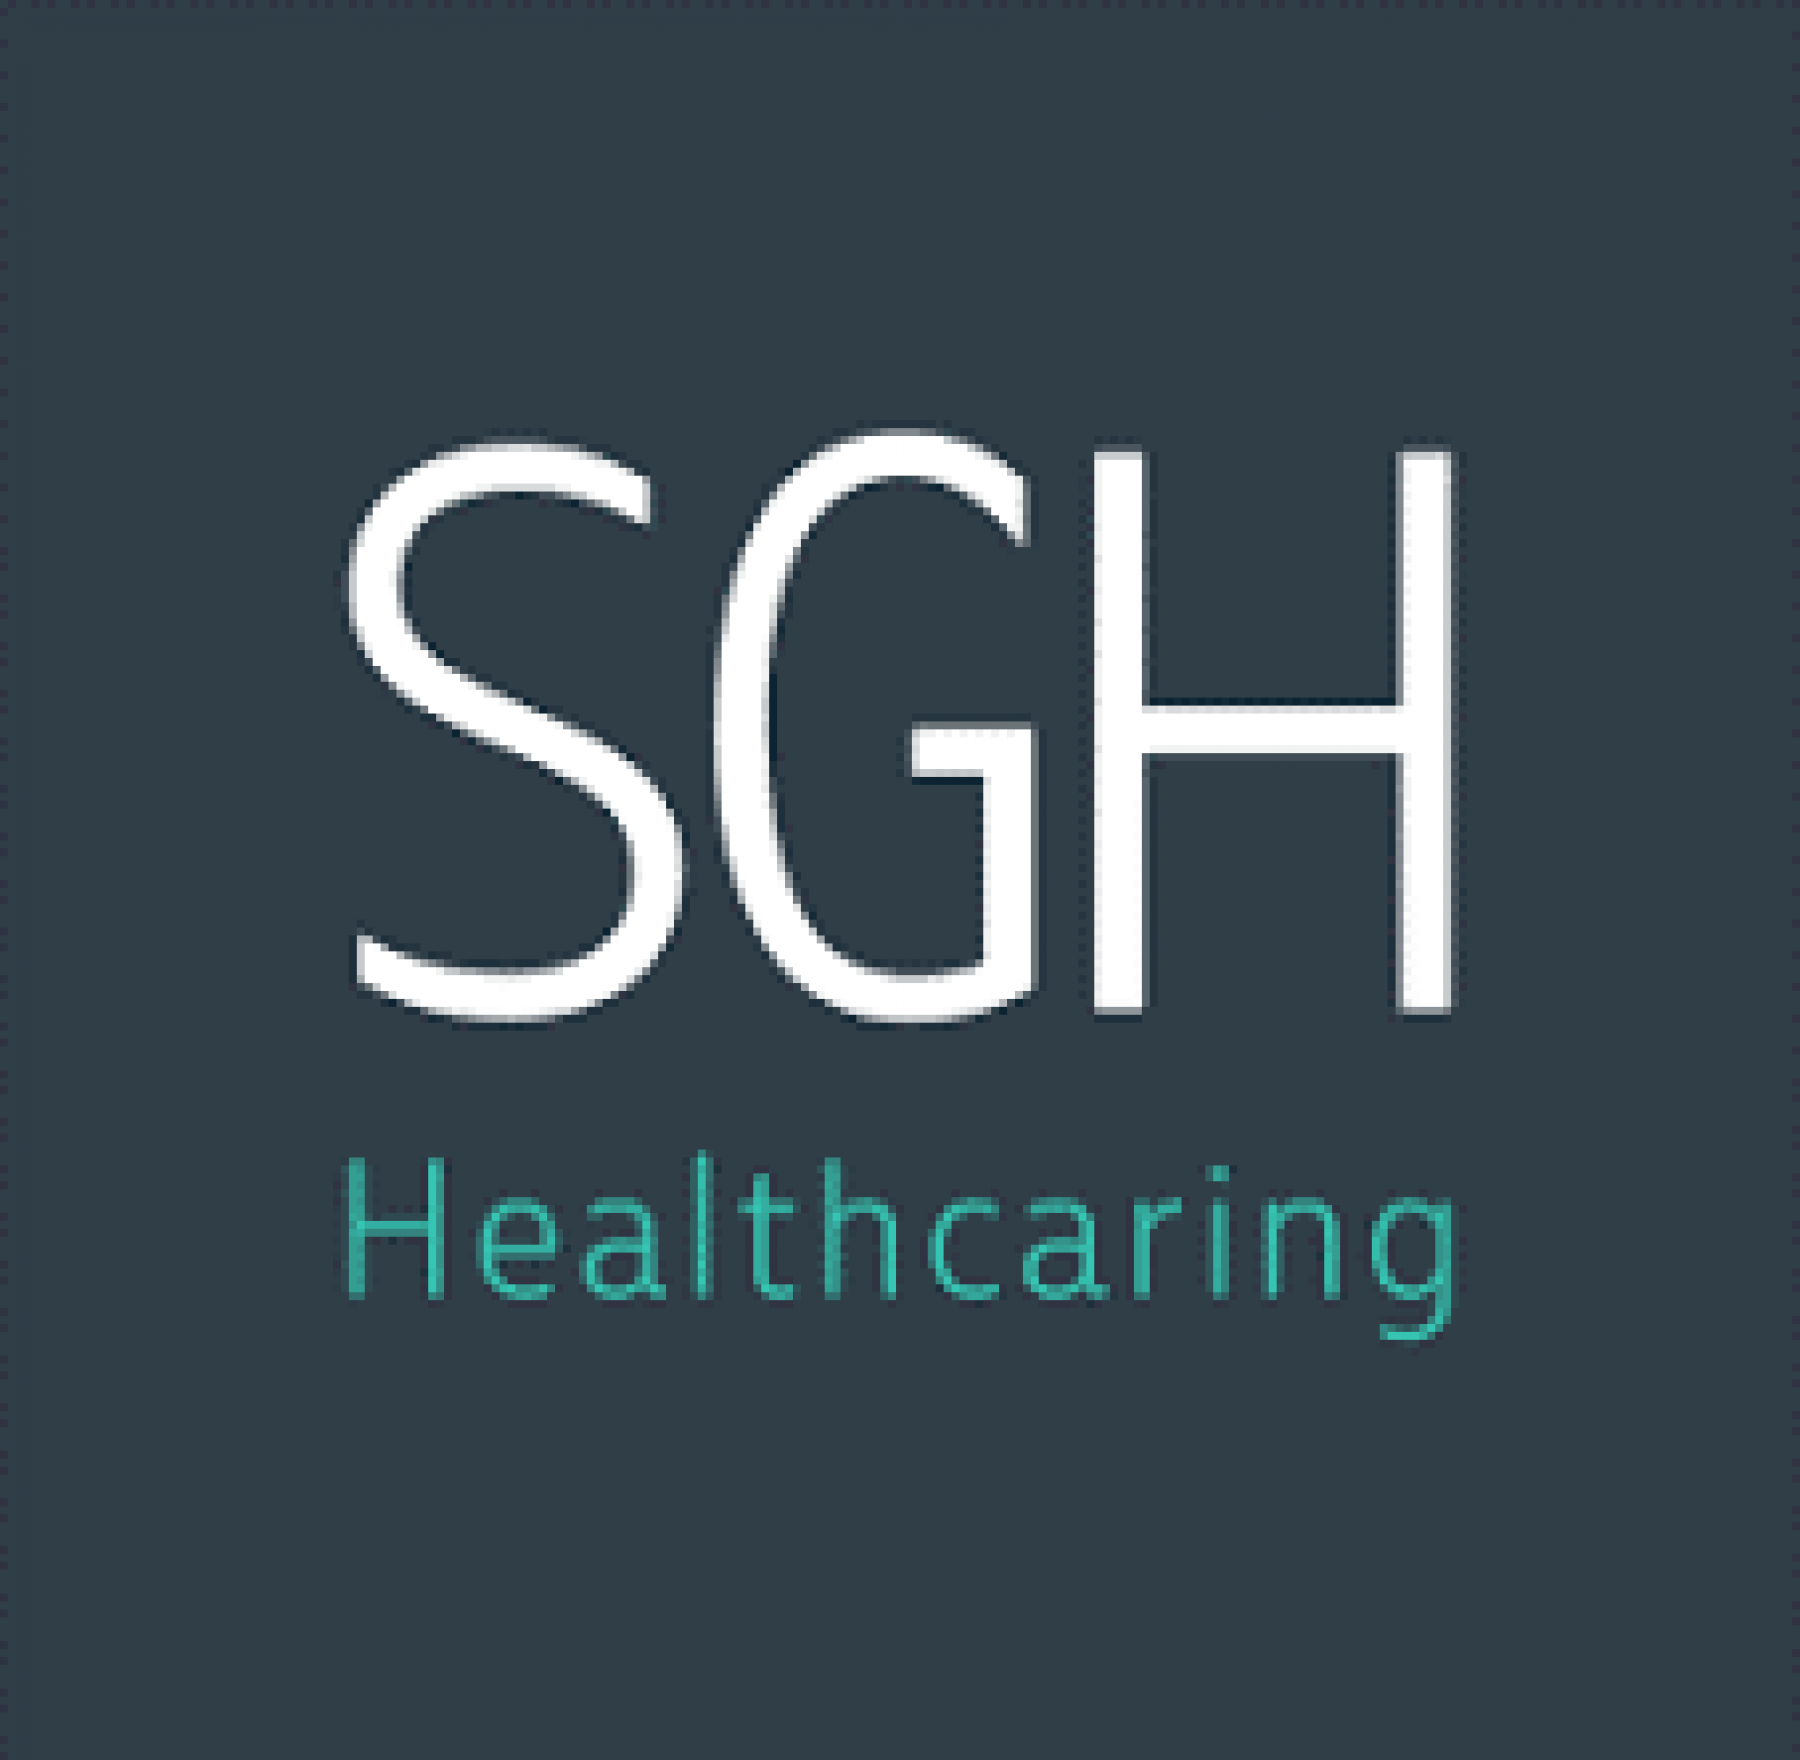 Levine Keszler advises <b>SGH healthcaring</b> in connection with the acquisitions of eskiss packaging and Laboratorie Dosapharm